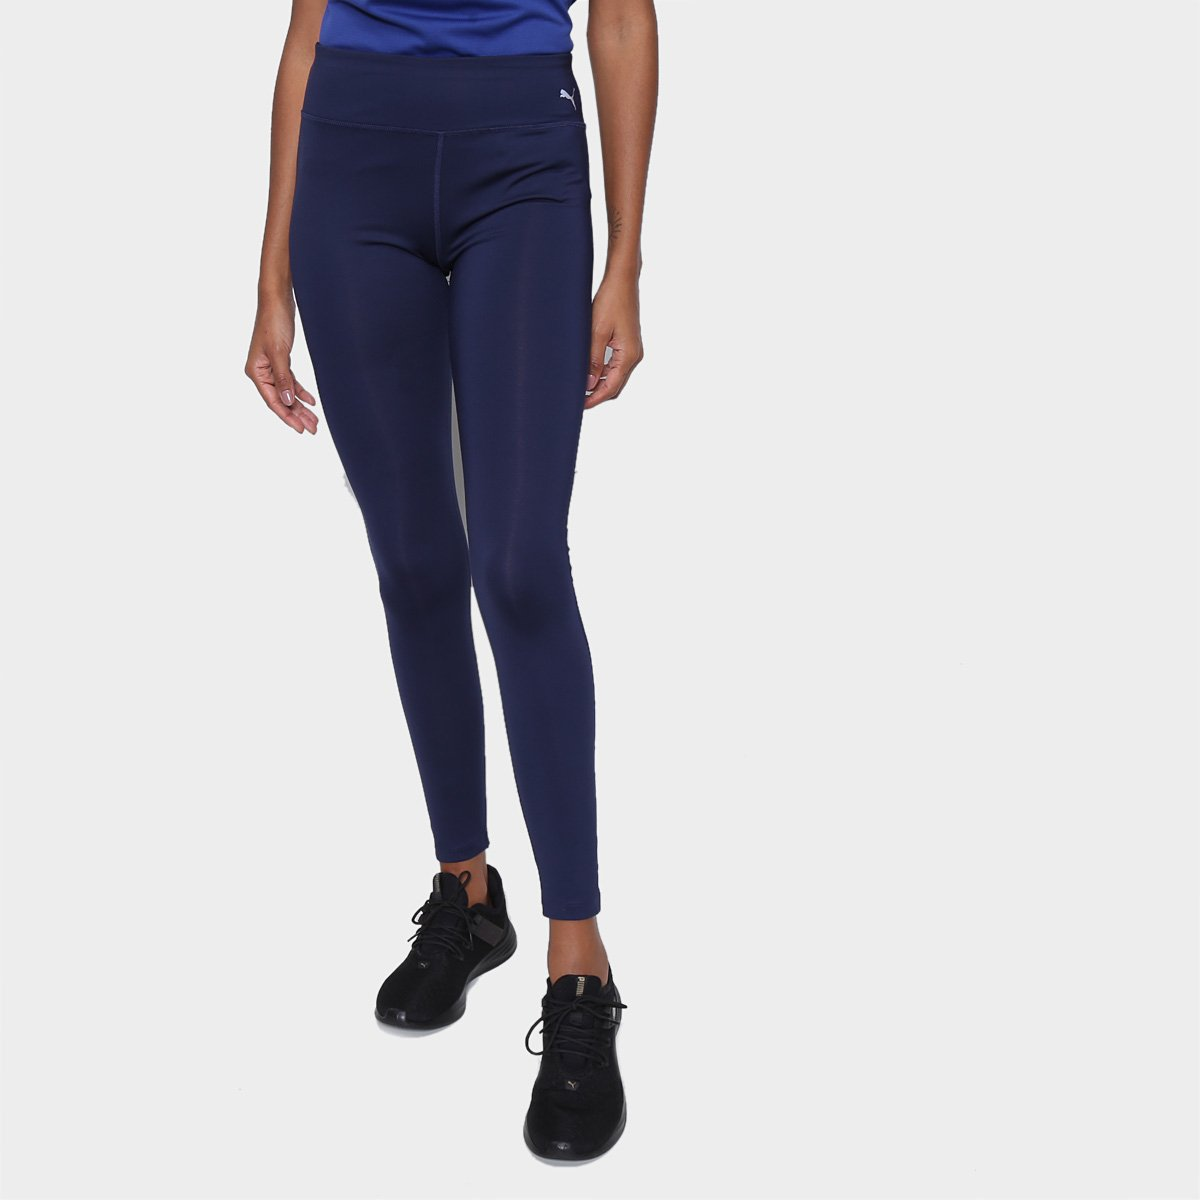 Calça Legging Puma Performance Full Tight Feminina